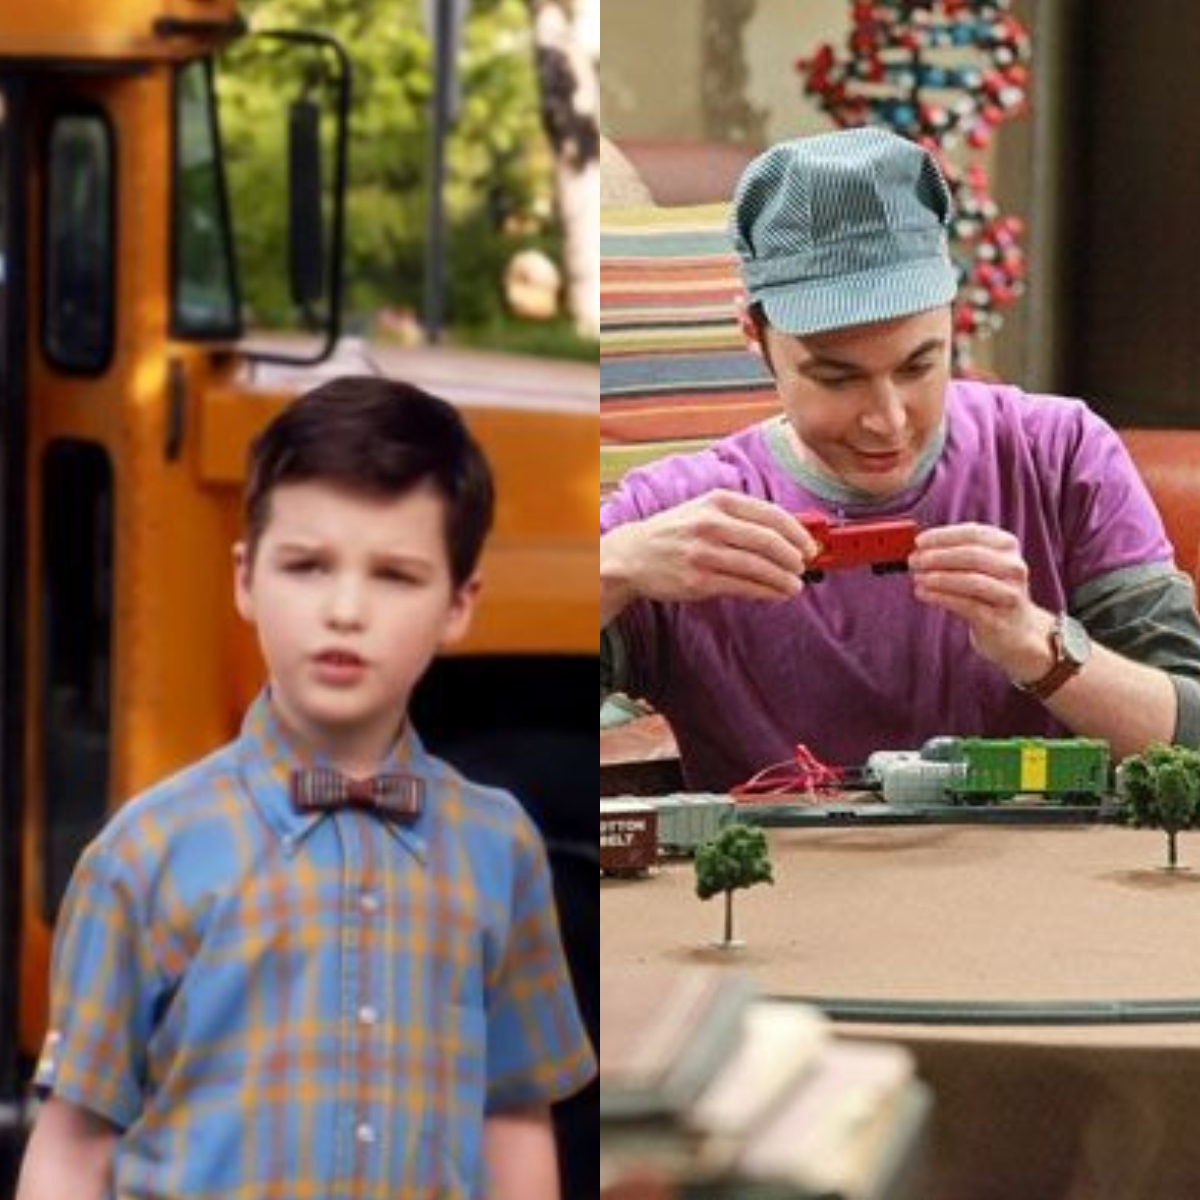 Young Sheldon's 5 facts will make you want to rewatch the show; Check it out